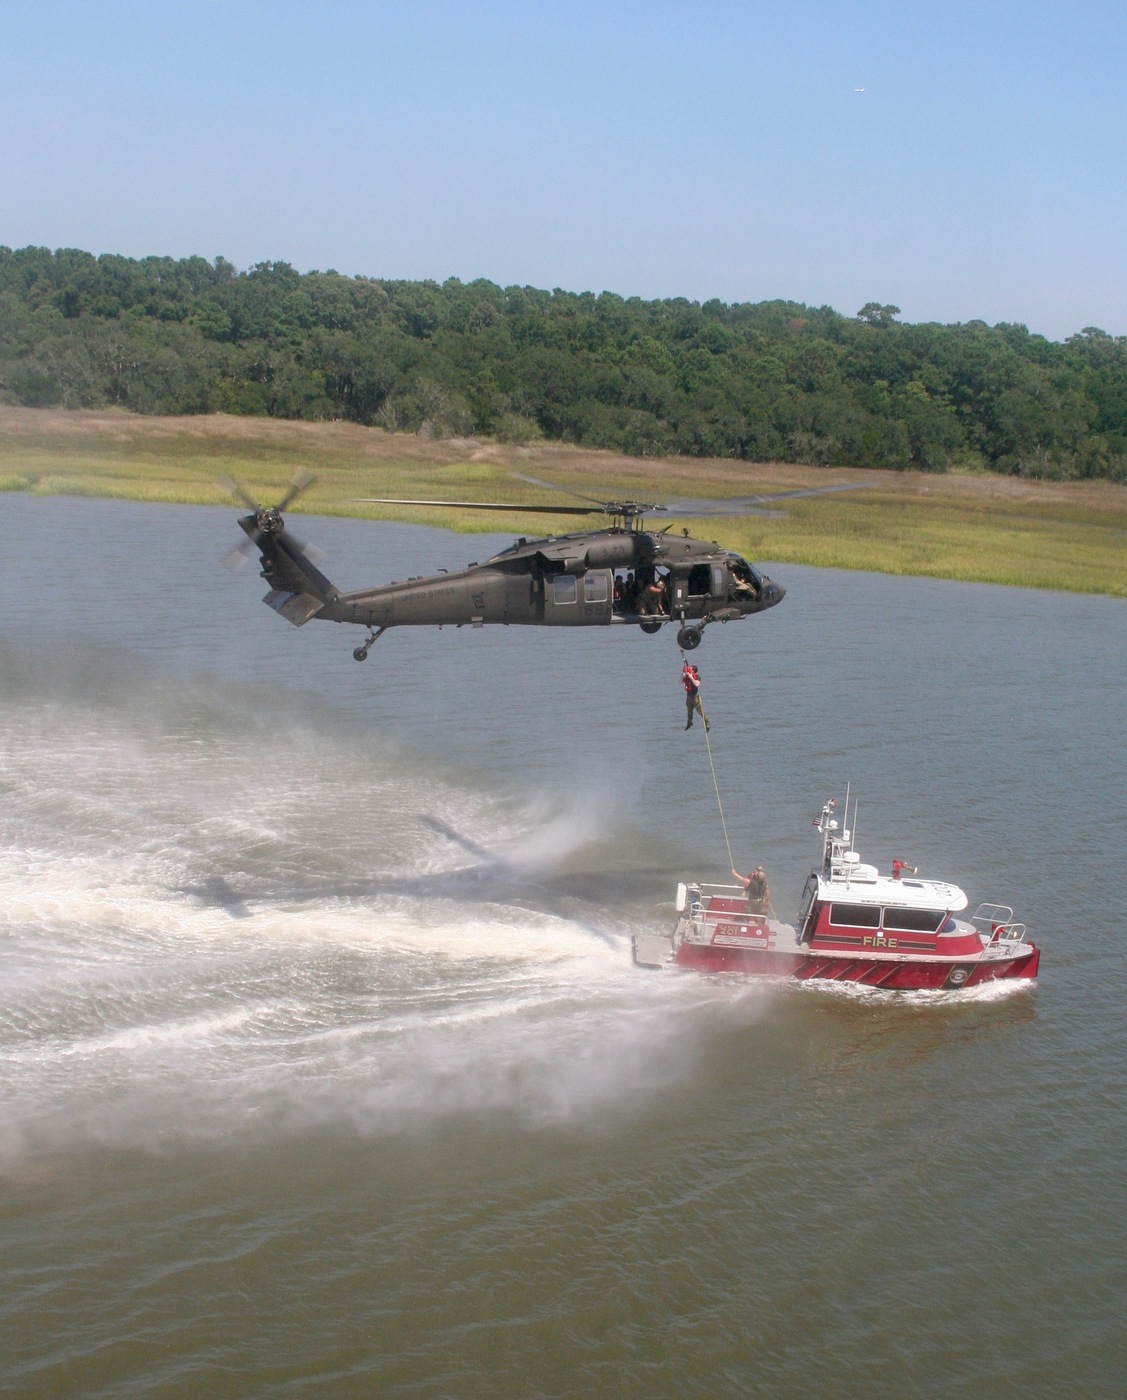 An FBI helicopter lifts firefighters from a fireboat during a Hostage Rescue Team (HRT) training exercise held August 5-7, 2019, in Charleston, South Carolina.